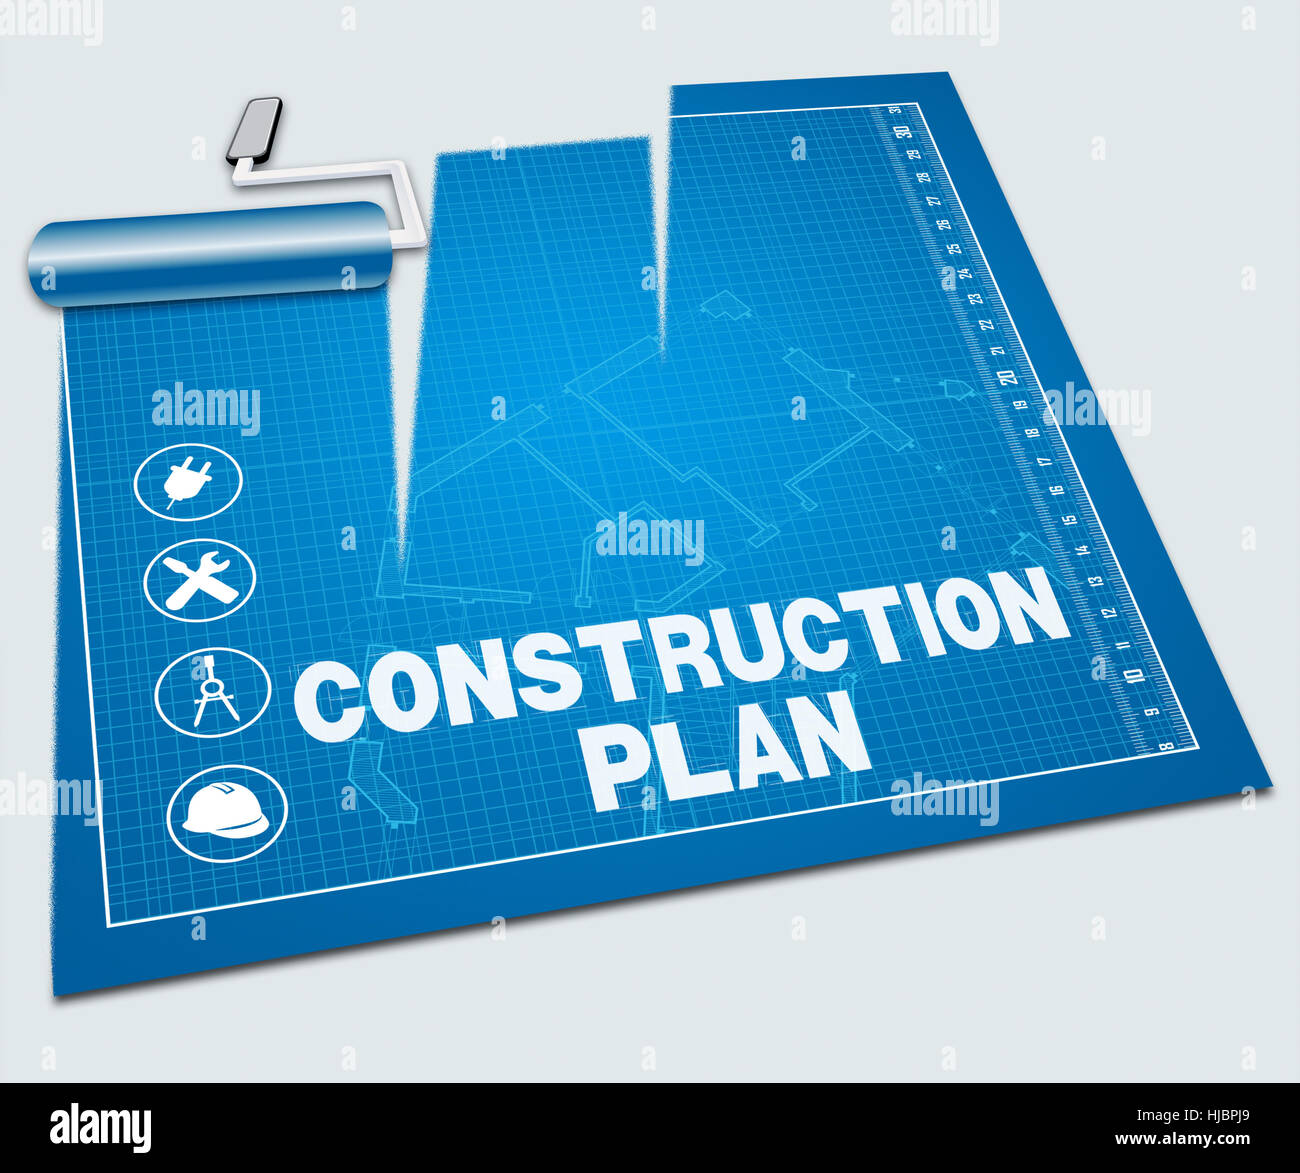 Construction plan paint roller shows building blueprint 3d stock construction plan paint roller shows building blueprint 3d illustration malvernweather